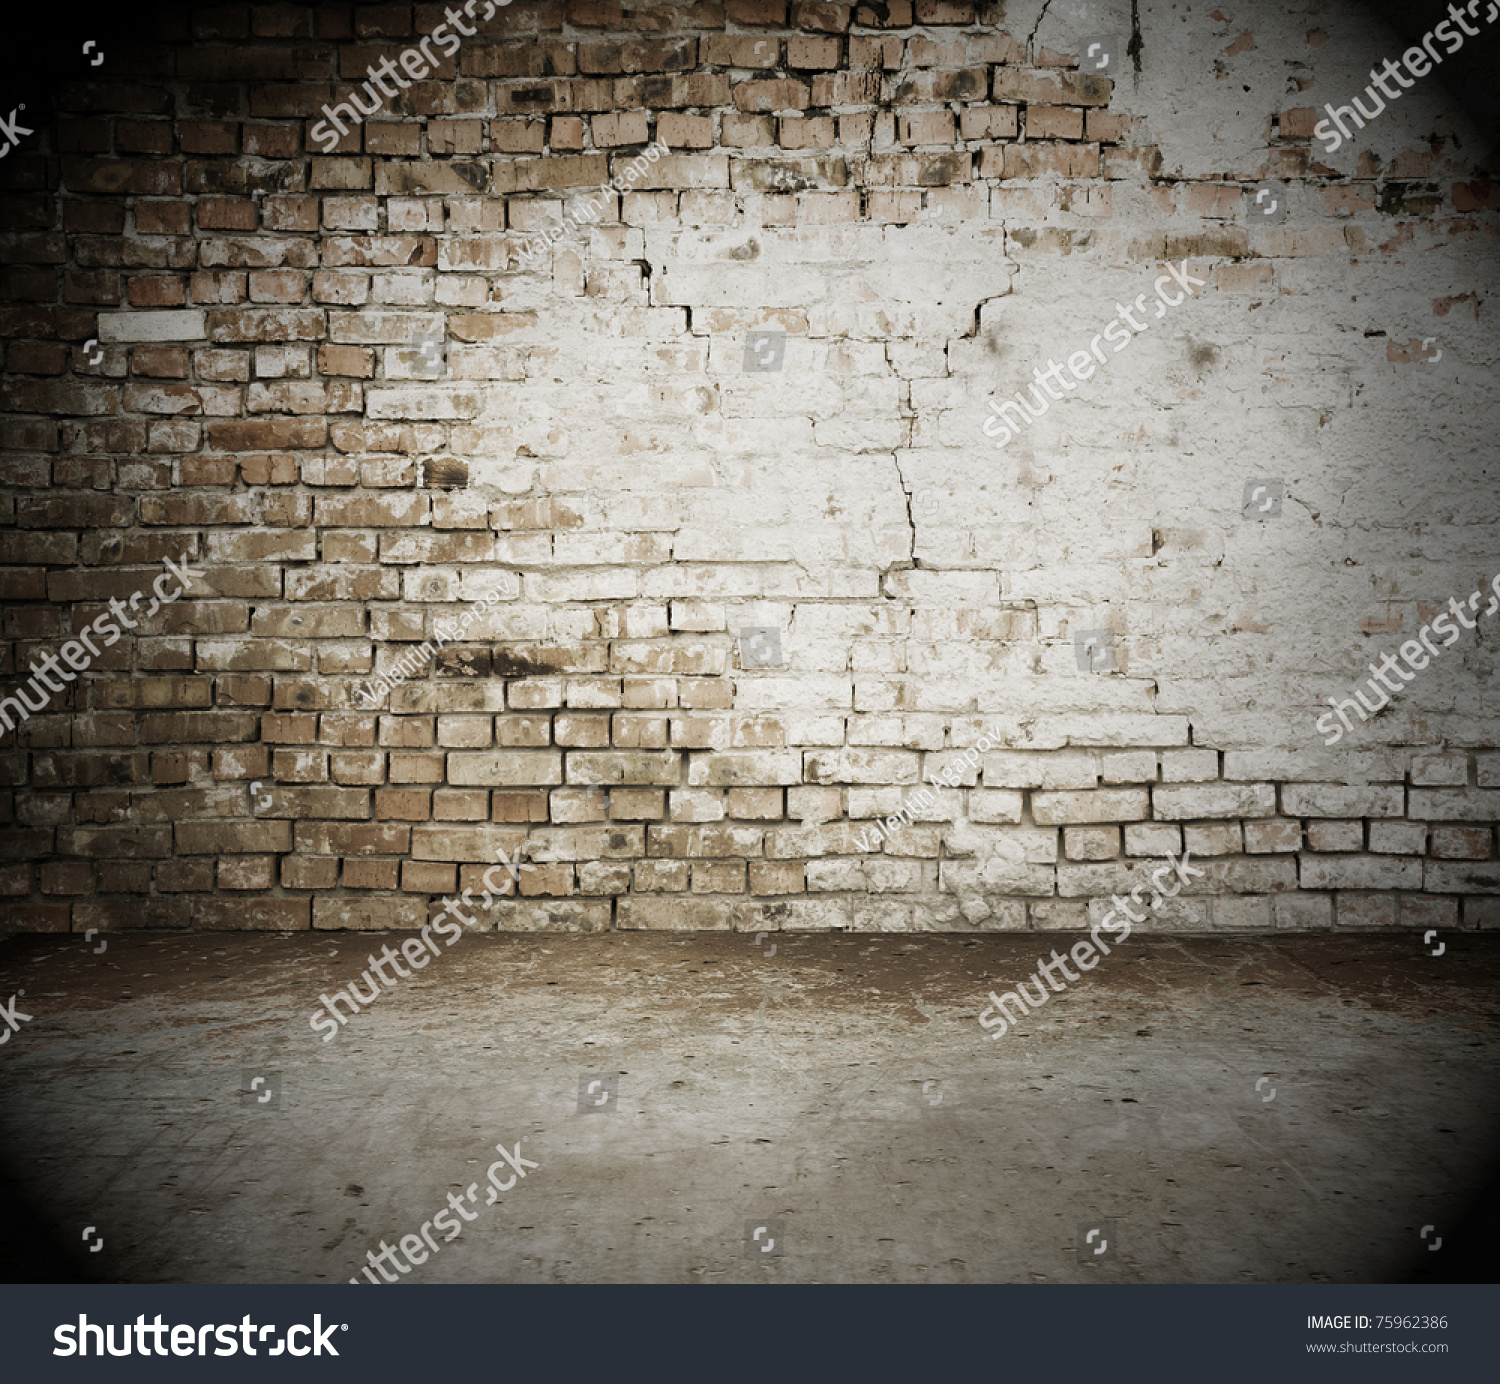 Brick Wall Images - Public Domain Pictures - Page 1